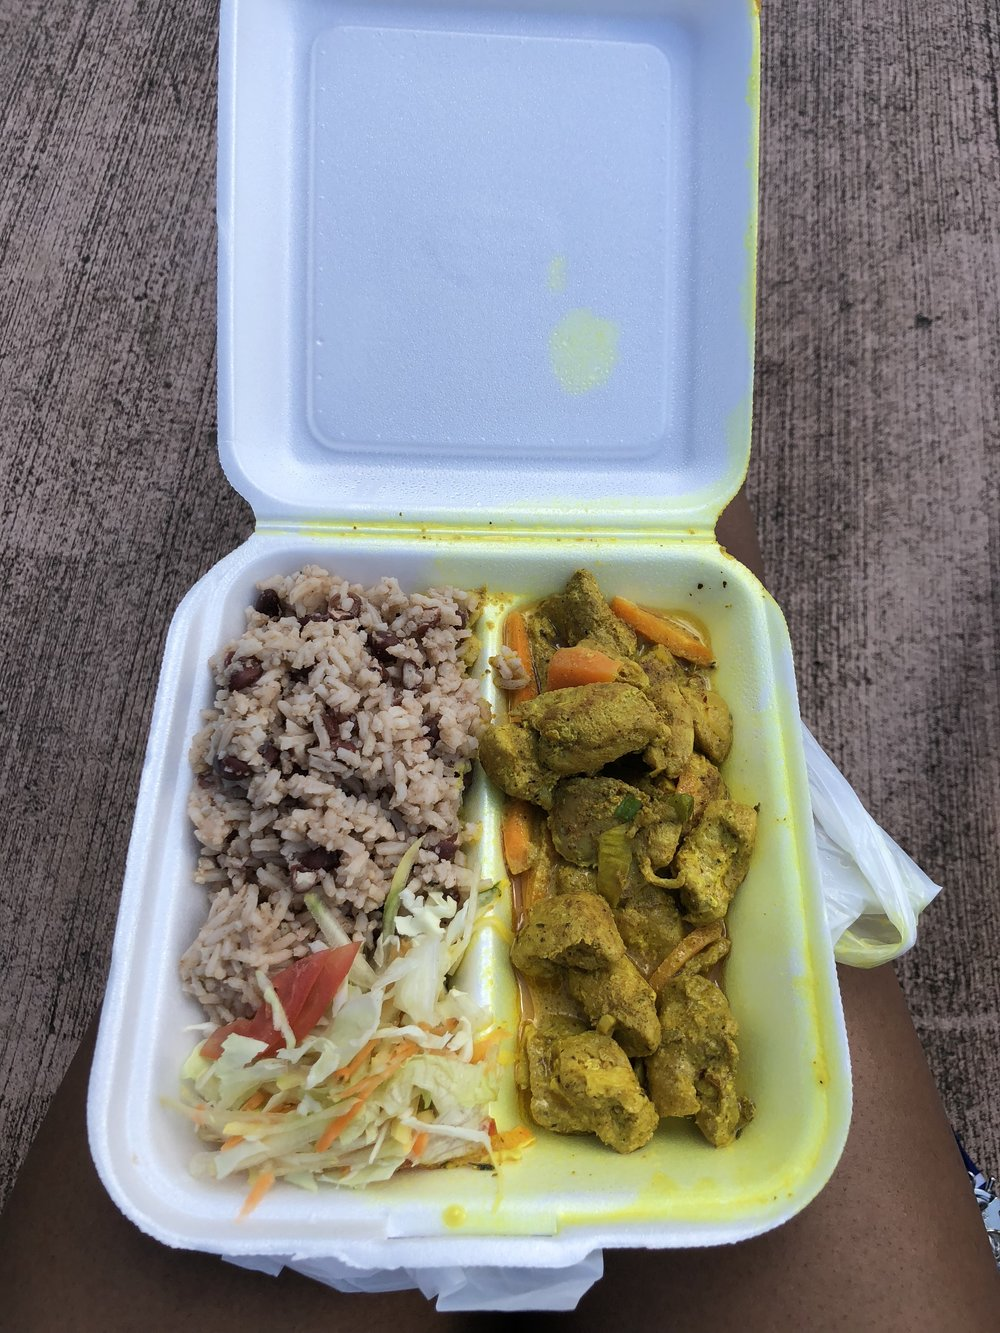 Authentic Jamaican food!!! Coconut curry chicken with beans and rice and cabbage